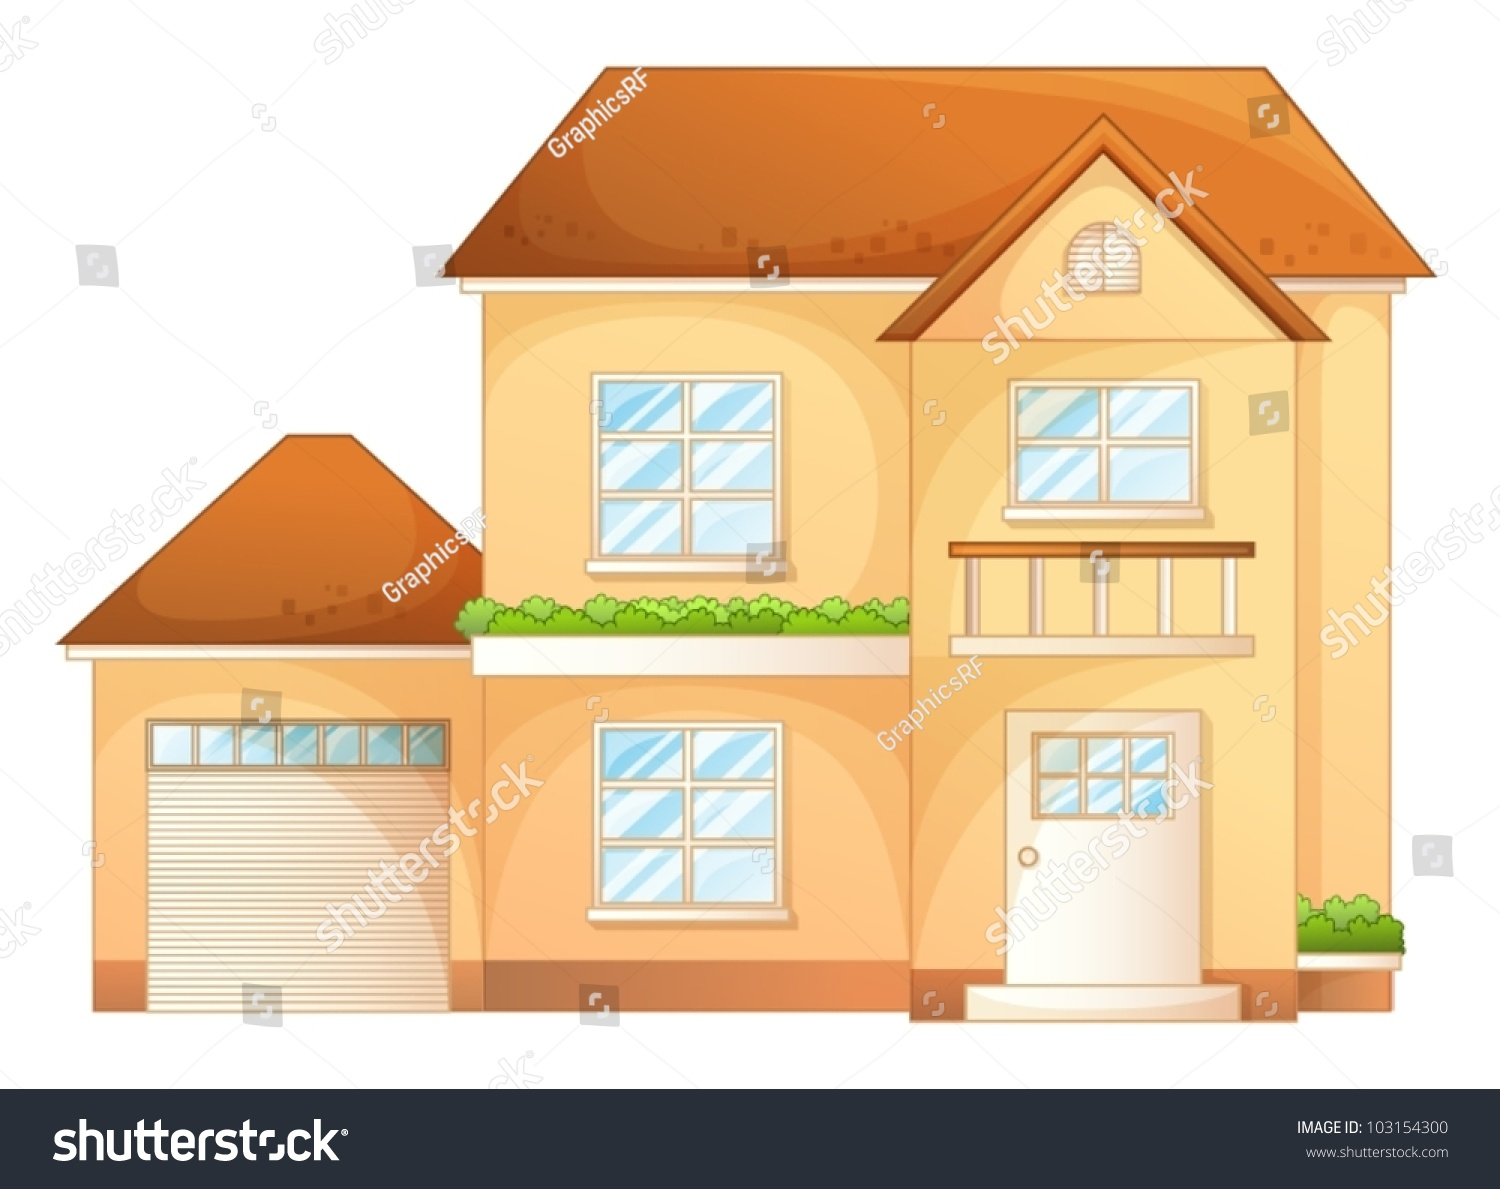 Illustration a simple house front view. Illustration Simple House Front View Stock Vector 103154300